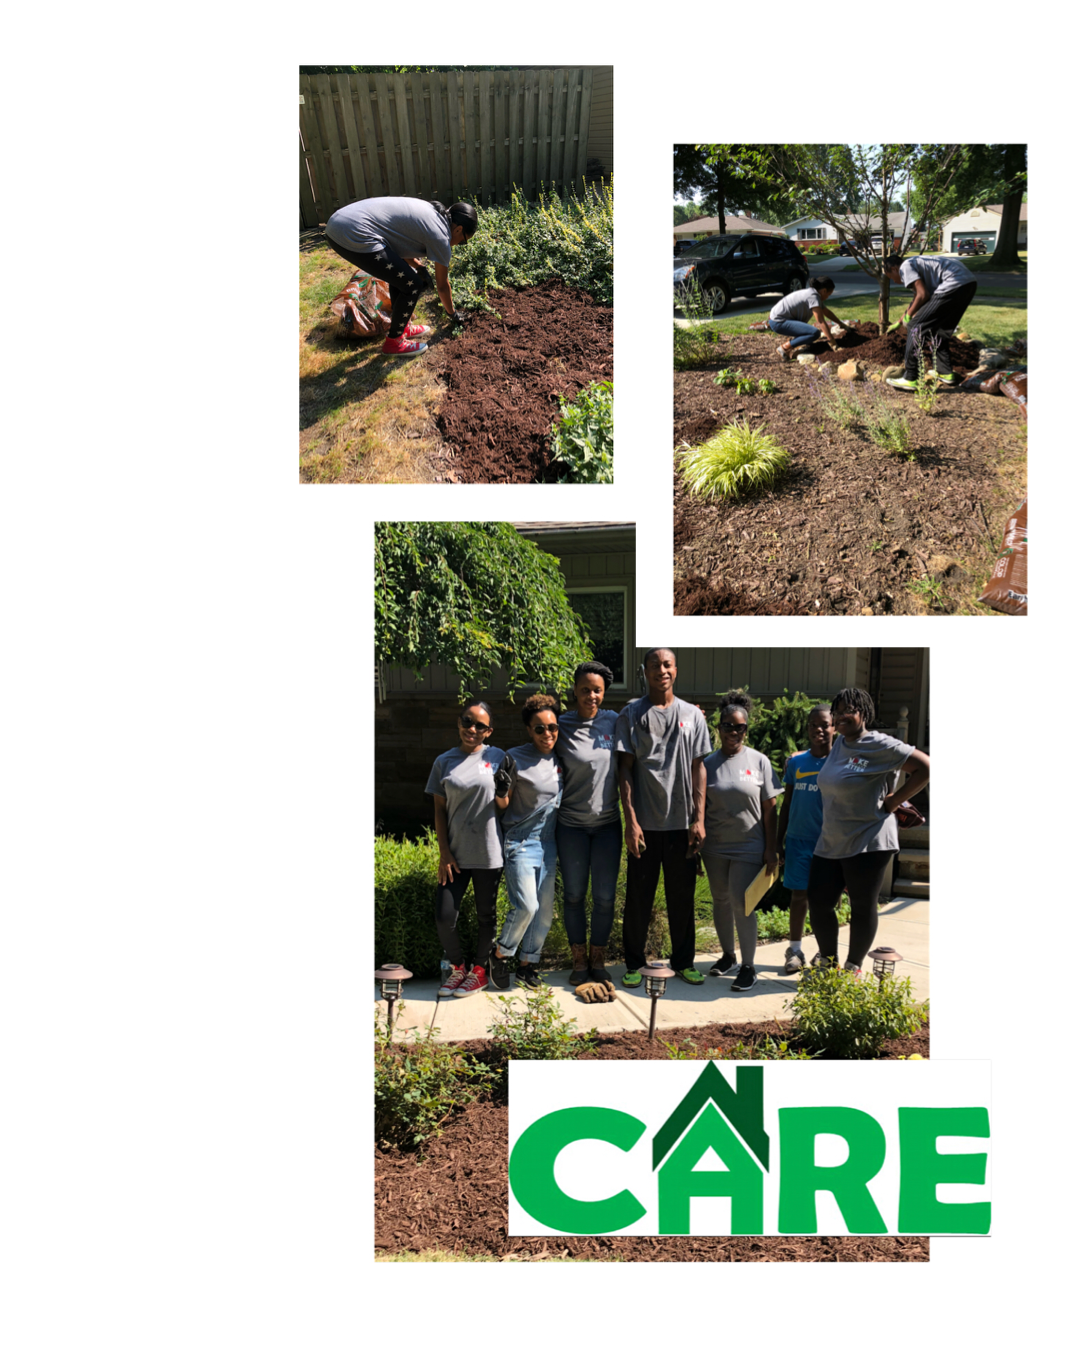 July 2018 - Dream Halo had the opportunity to help the community alongside New Community Bible Fellowship of Cleveland Heights, Ohio and their #makeclevelandbetter initiative! We helped maintain and lay mulch in the front yard of a beautiful couple's home. They were so grateful but we were also so grateful for the ability to serve them during their need. We hope to continue our partnership with the Care Program.If you're someone who would like to spend some time during the week volunteering to help senior citizens live a better life by performing routine maintenance or home repair, the CARE Program is for you!To learn more about the Care Program, Click below!